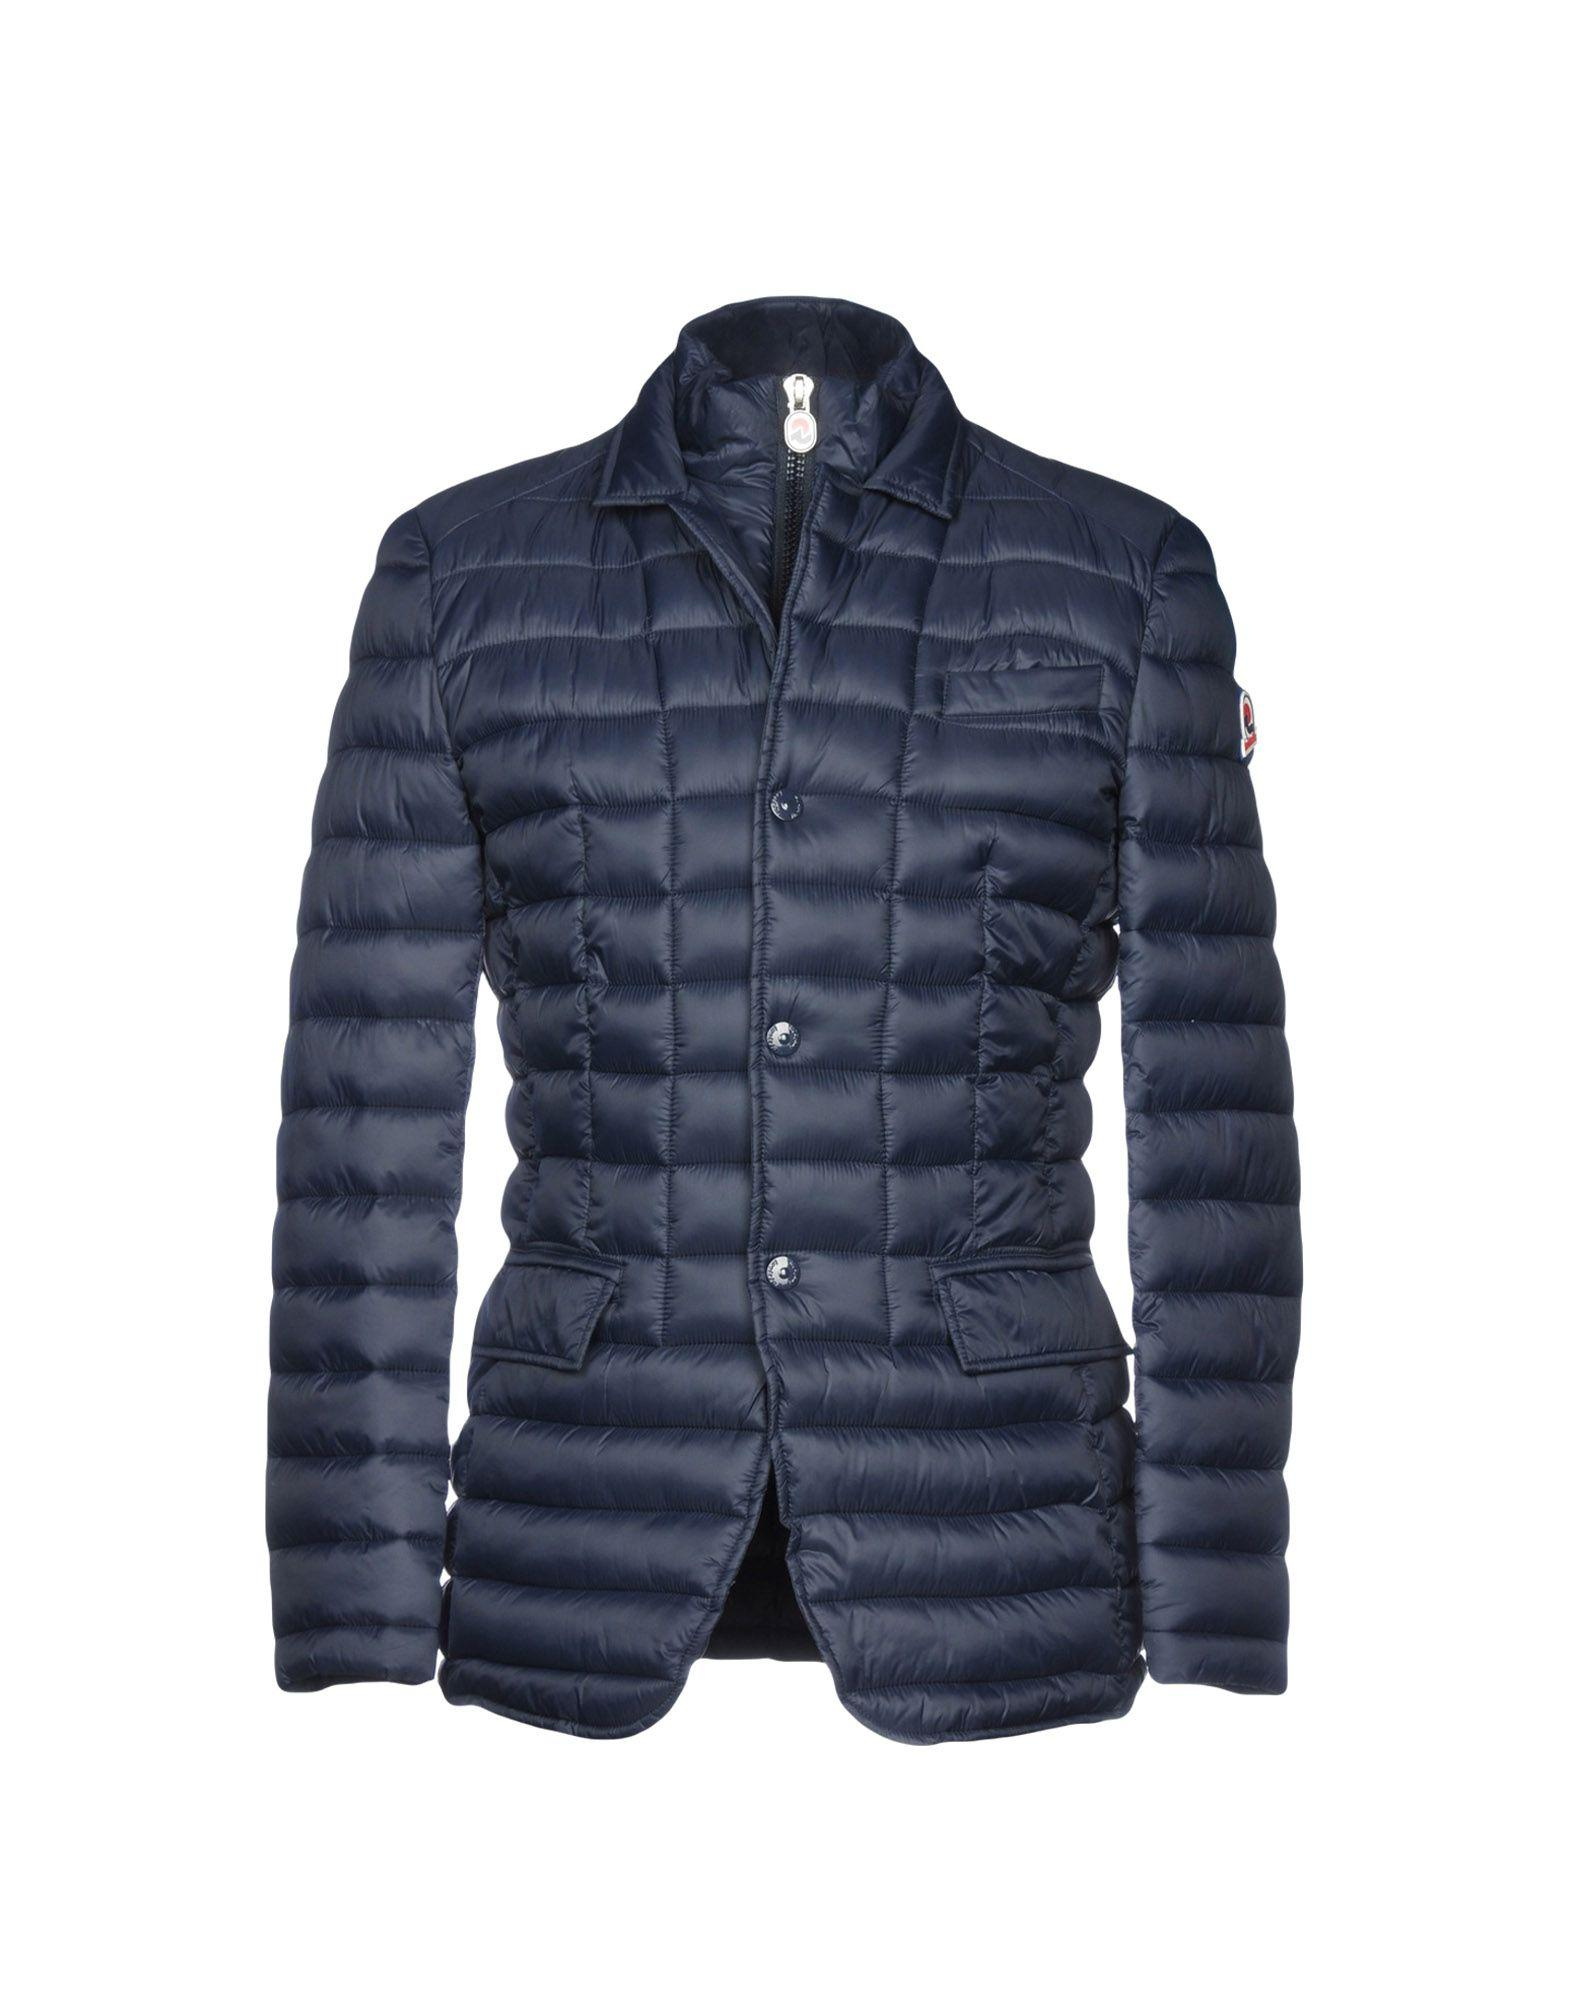 Invicta Jackets In Dark Blue